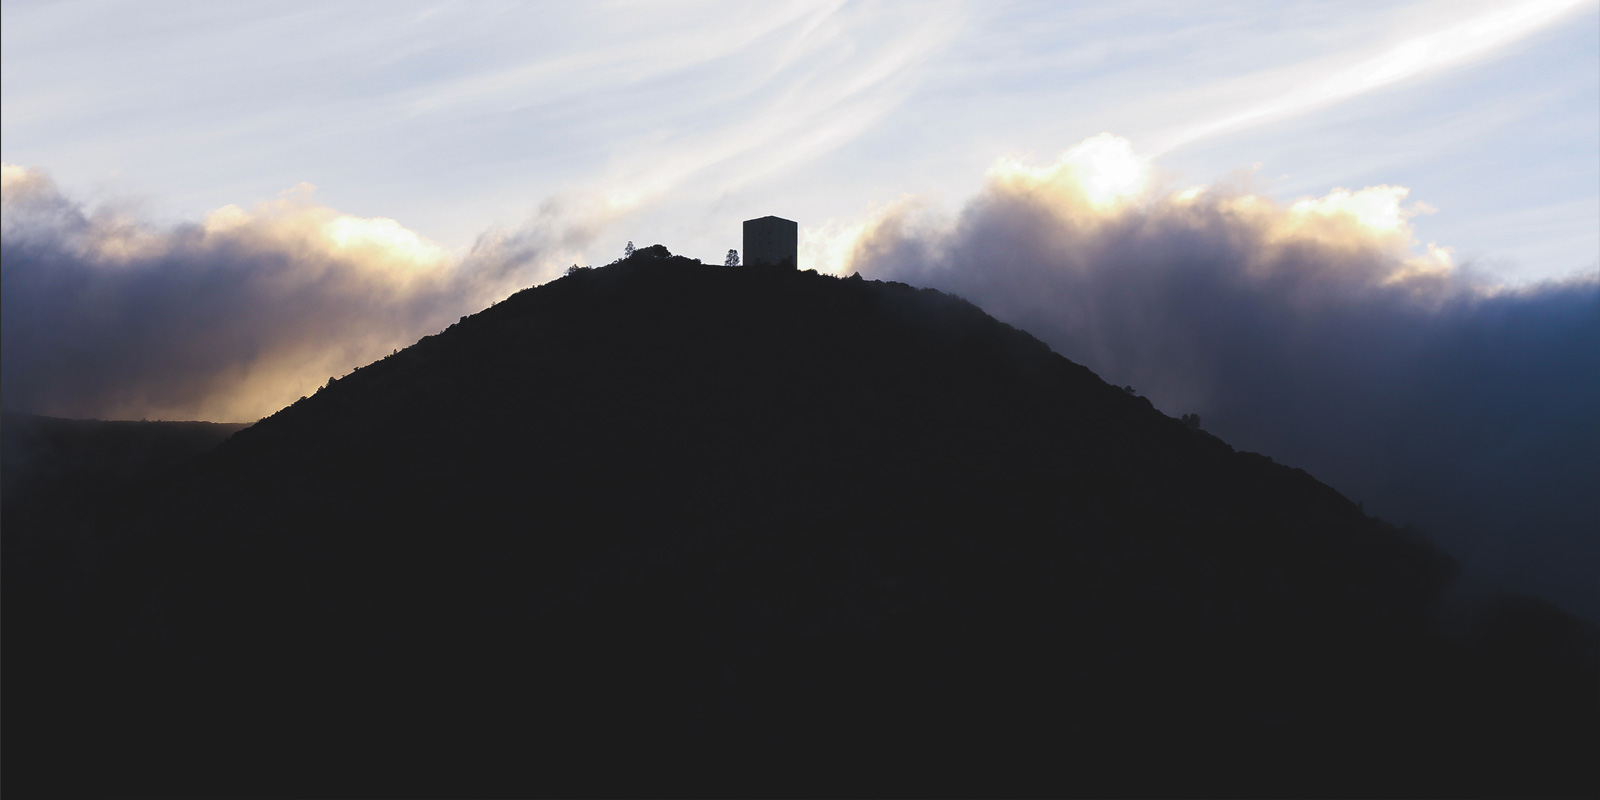 Knight Writes | Mt. Umunhum Story / Photos by Camila Pereira